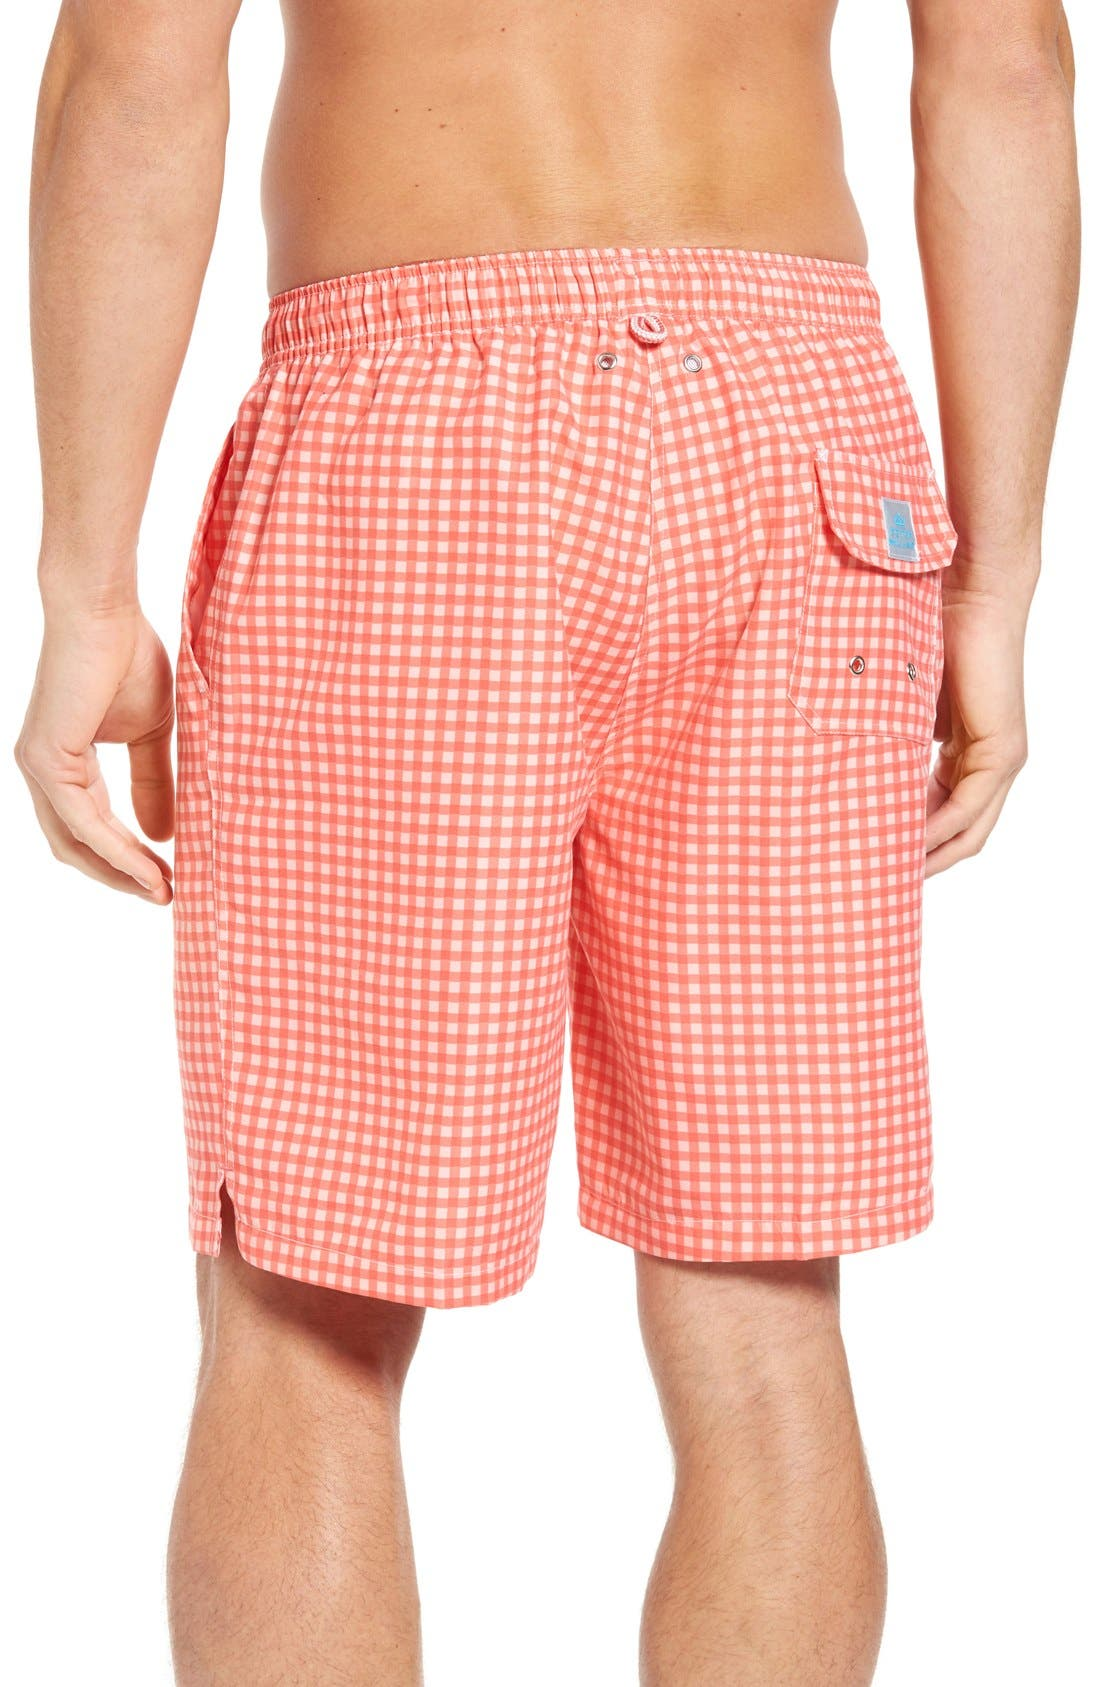 Alternate Image 2  - Peter Millar Gingham Swim Trunks